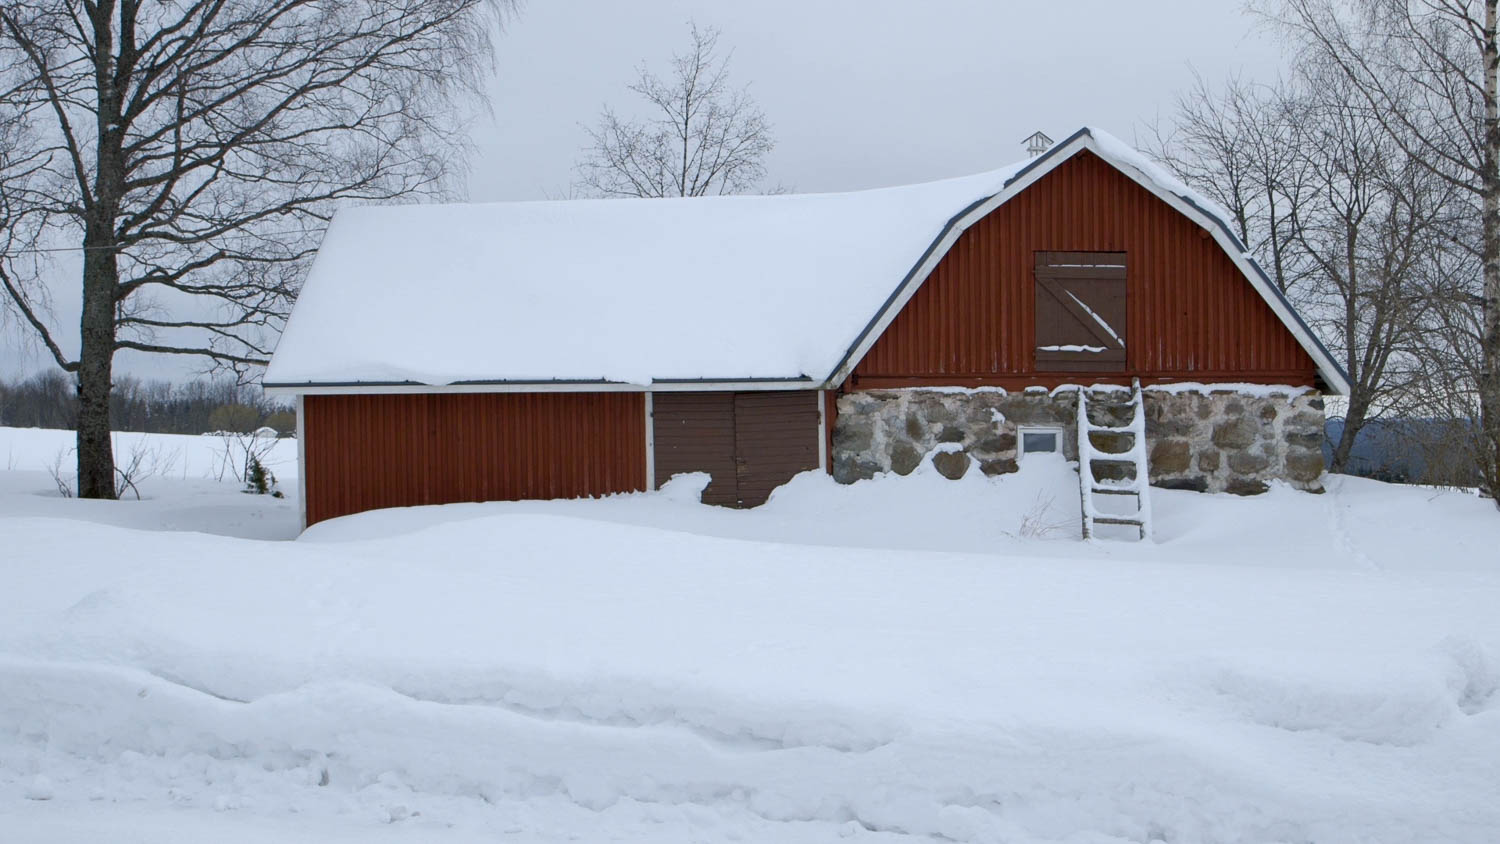 Following rain and a warm January, h eavy snowfalls came in February,